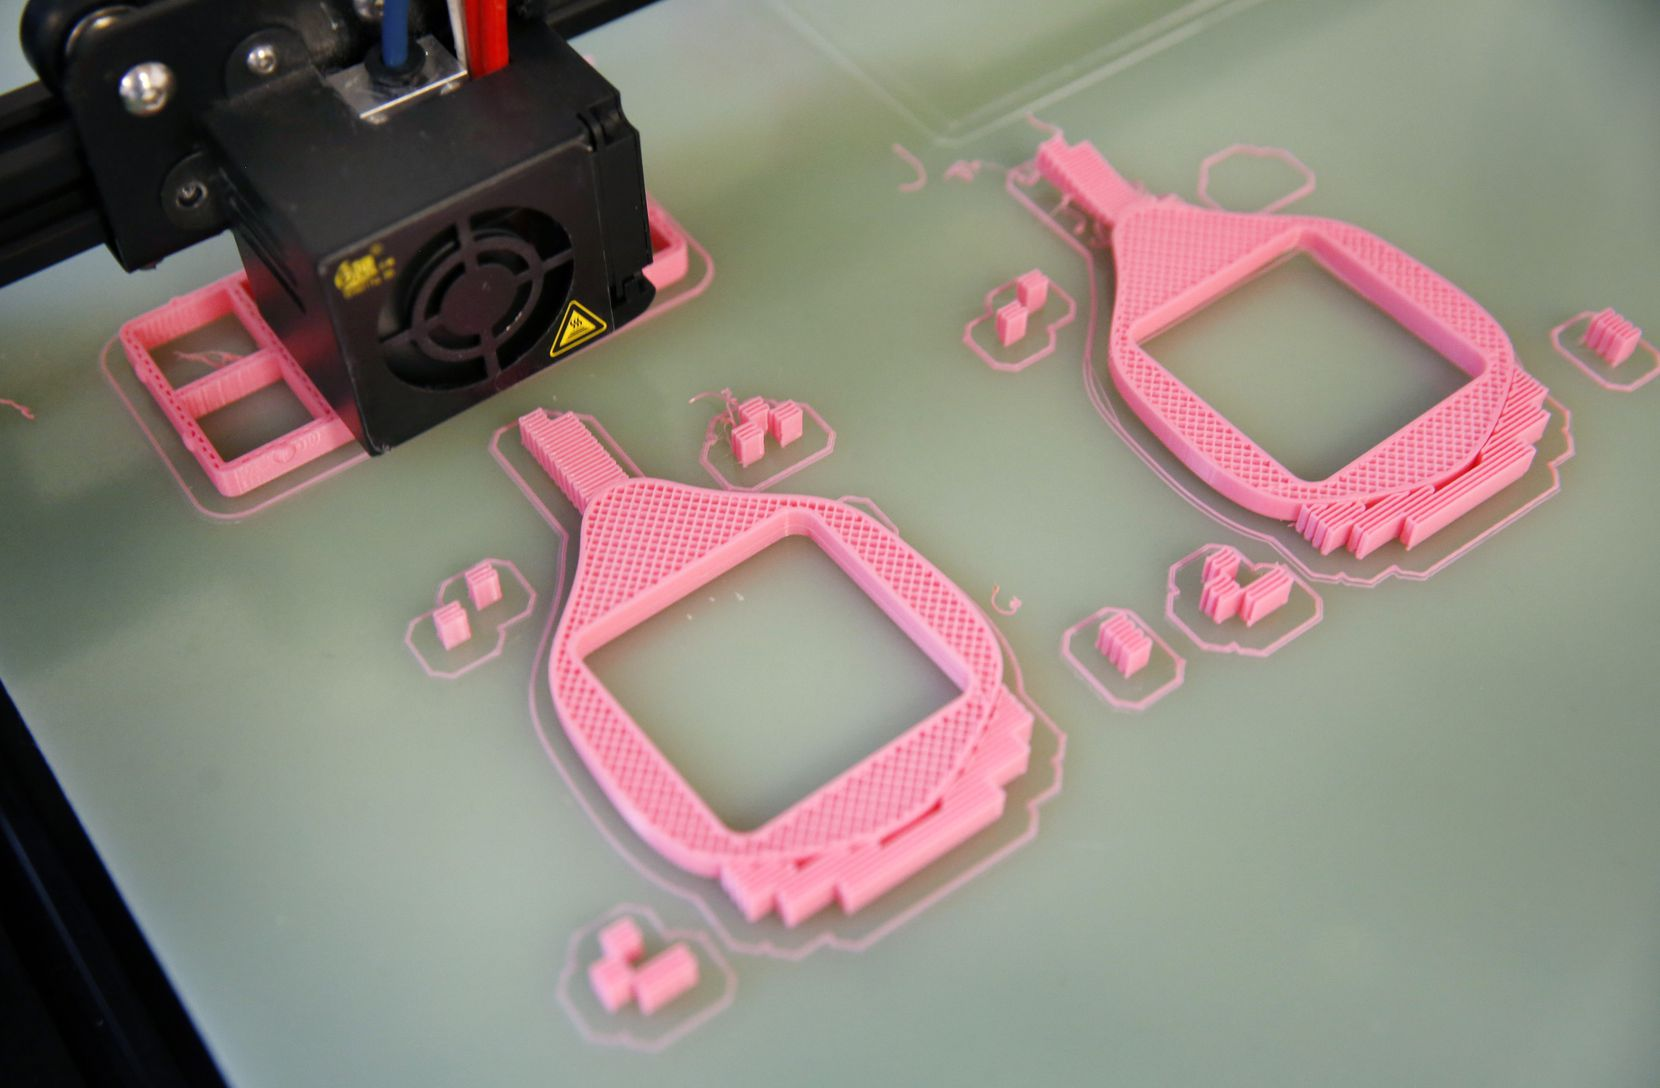 A 3-D printer creates a pink respiratory mask at Unique Software Development on N. Central Expressway in Dallas, Friday, March 27, 2020.